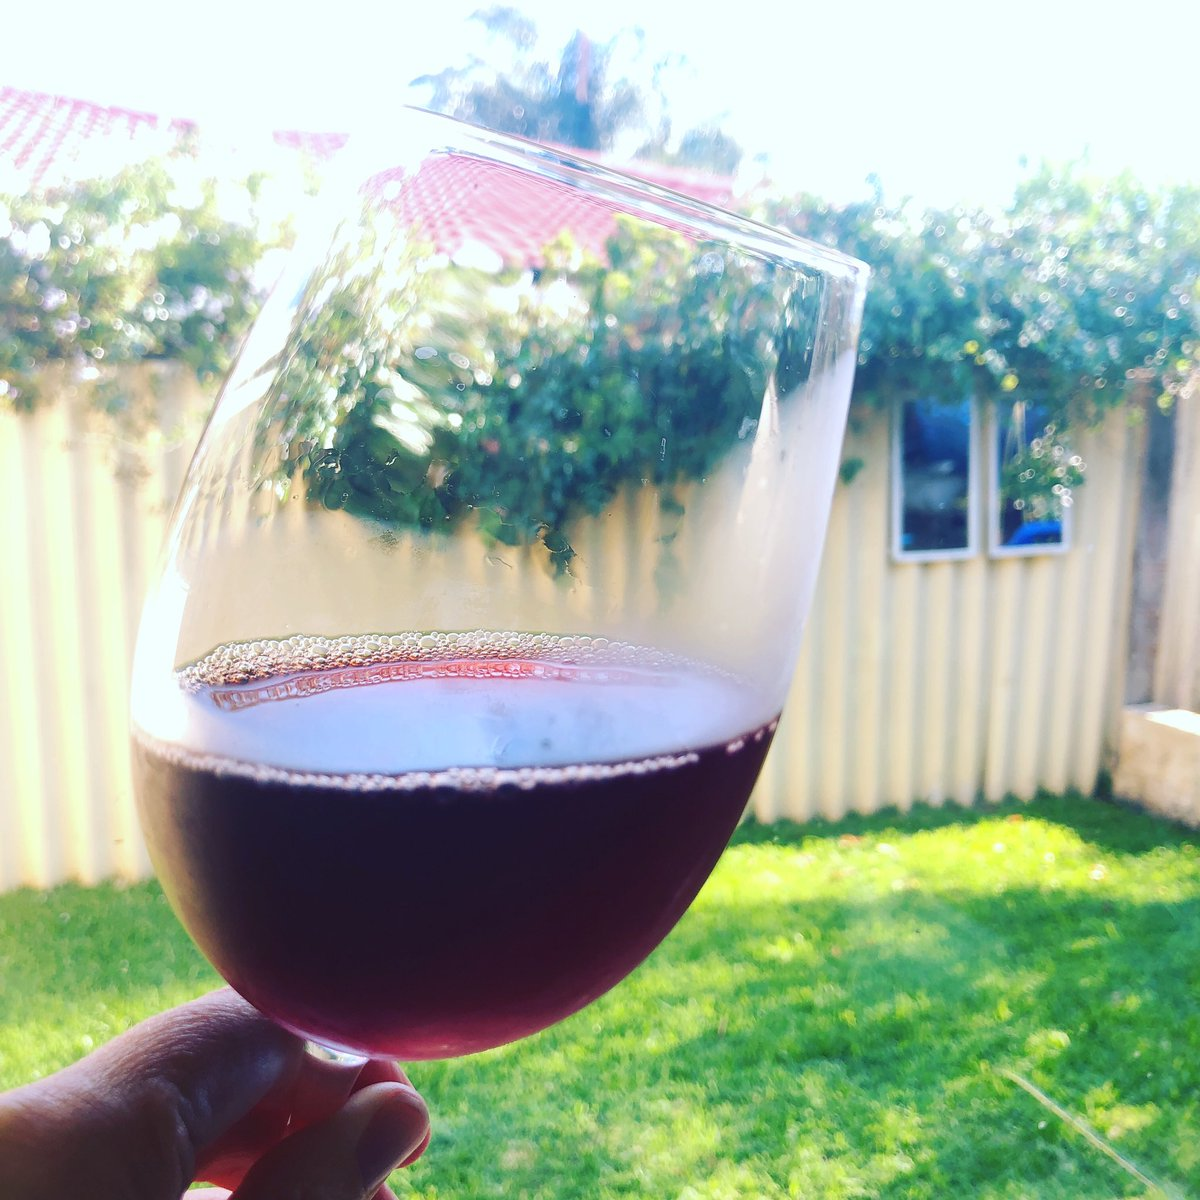 Look at the colour of this lovely Alicante Bouchet from 2012 #summerwine #fromthecellar #gotorose #southaustralia #barossa #rockford https://t.co/gEvsWShL29